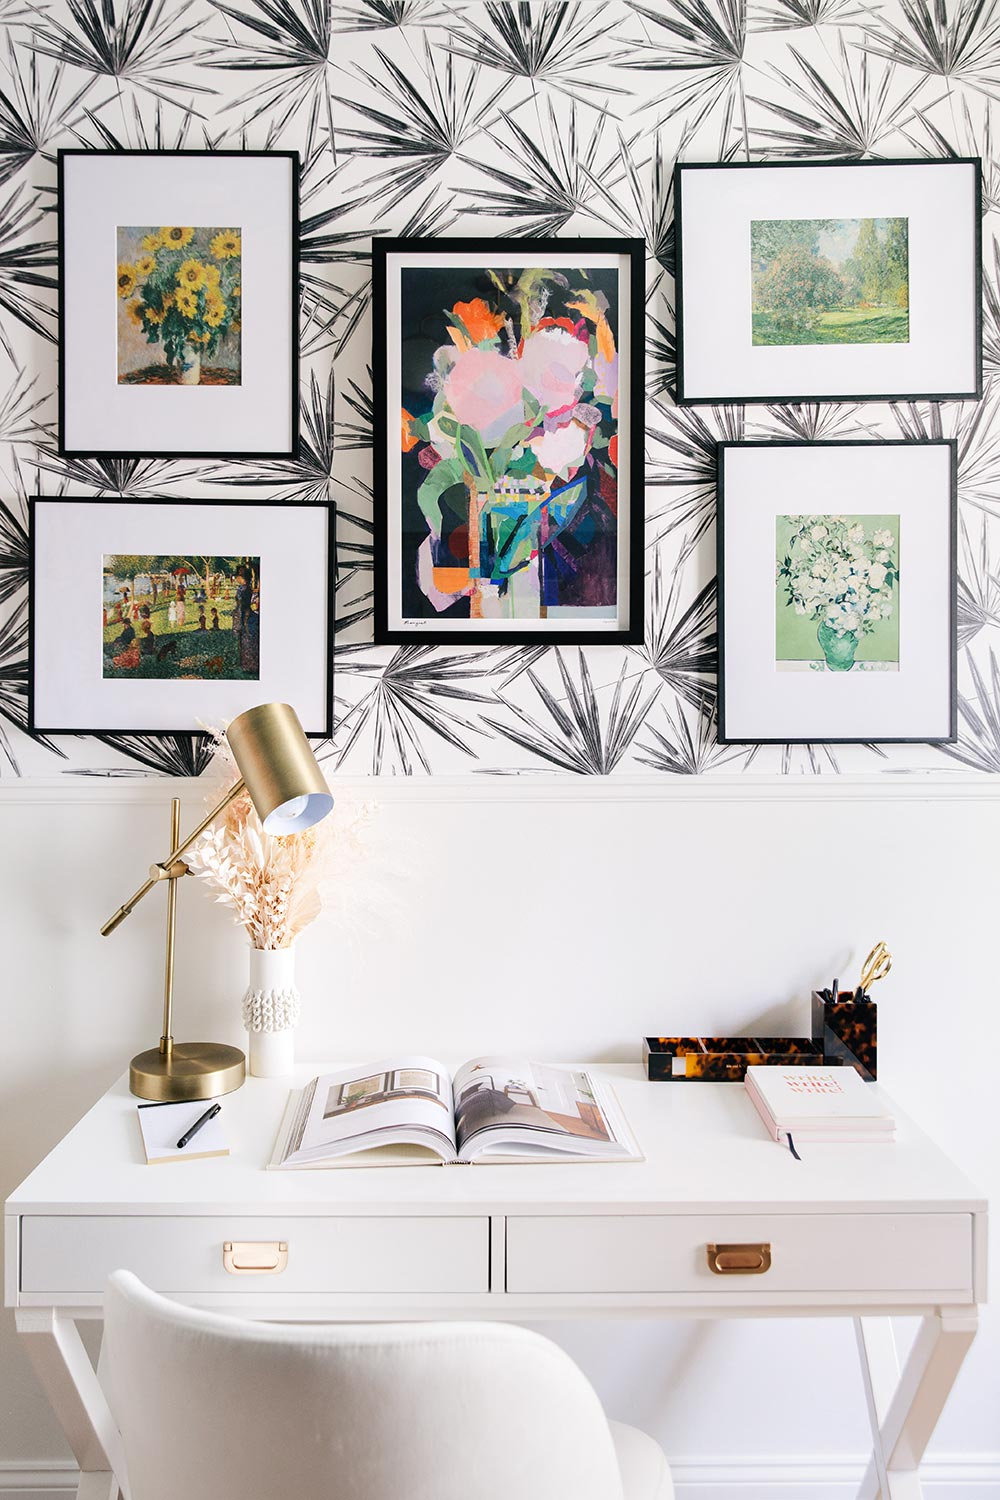 Black and White removable wallpaper interior ideas for your home